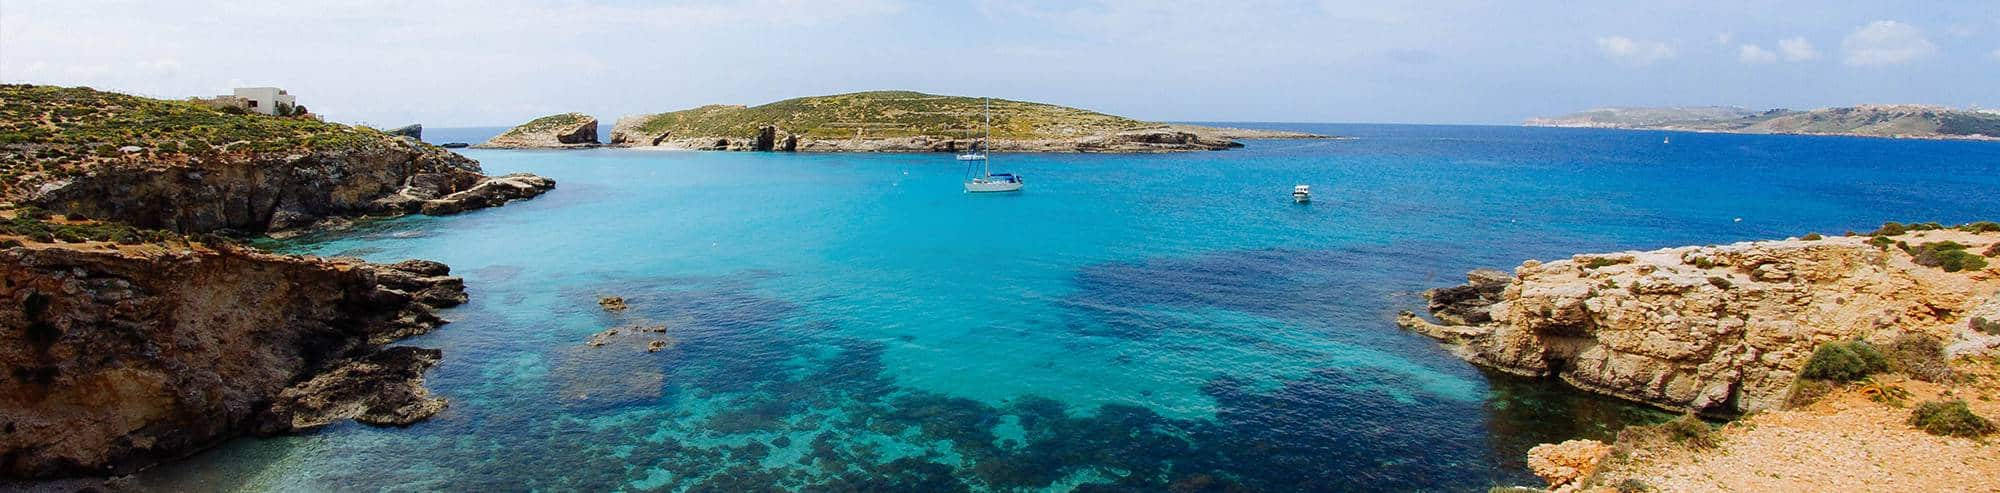 Malta holidays with a view of Comino's most popular attraction: The Blue Lagoon. Photo by Flavio Ensiki